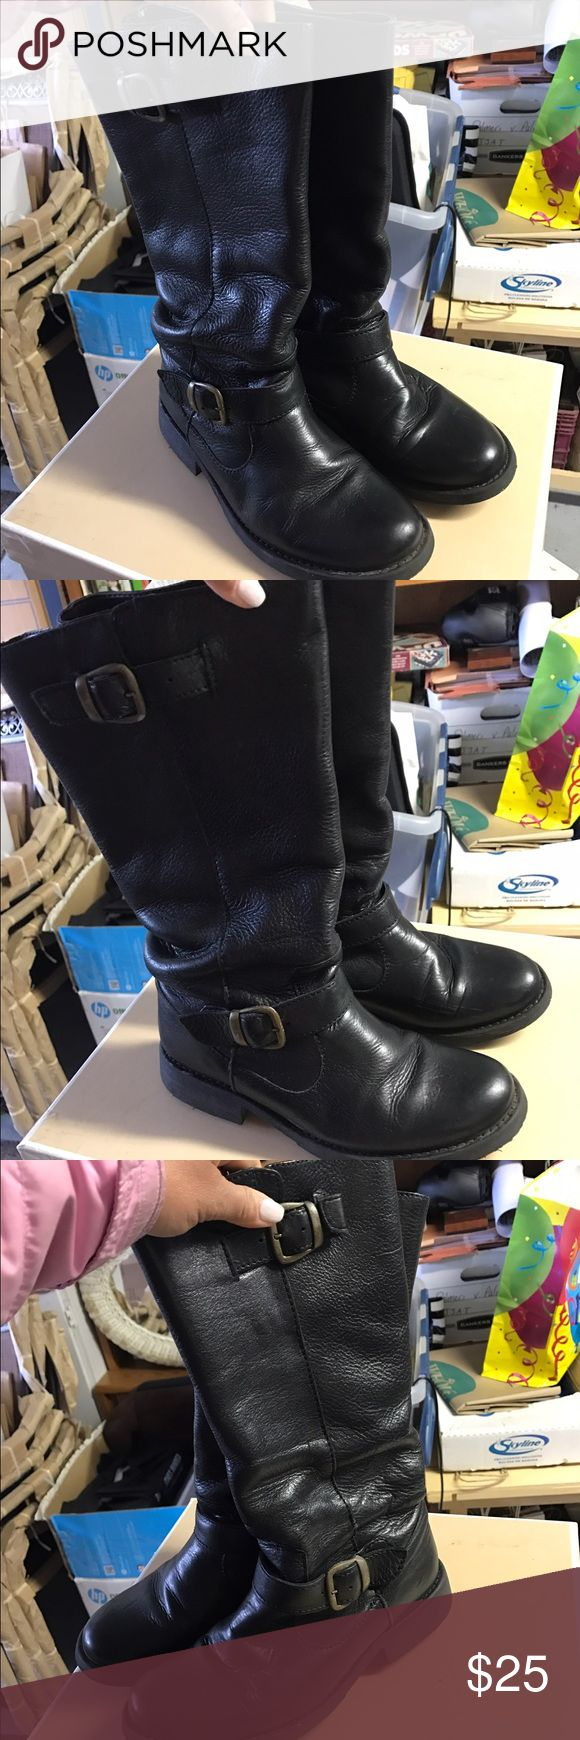 Steve Madden Black Boots Worn very few times. Black everyday leather boots. Very comfortable. Steve Madden Shoes Over the Knee Boots